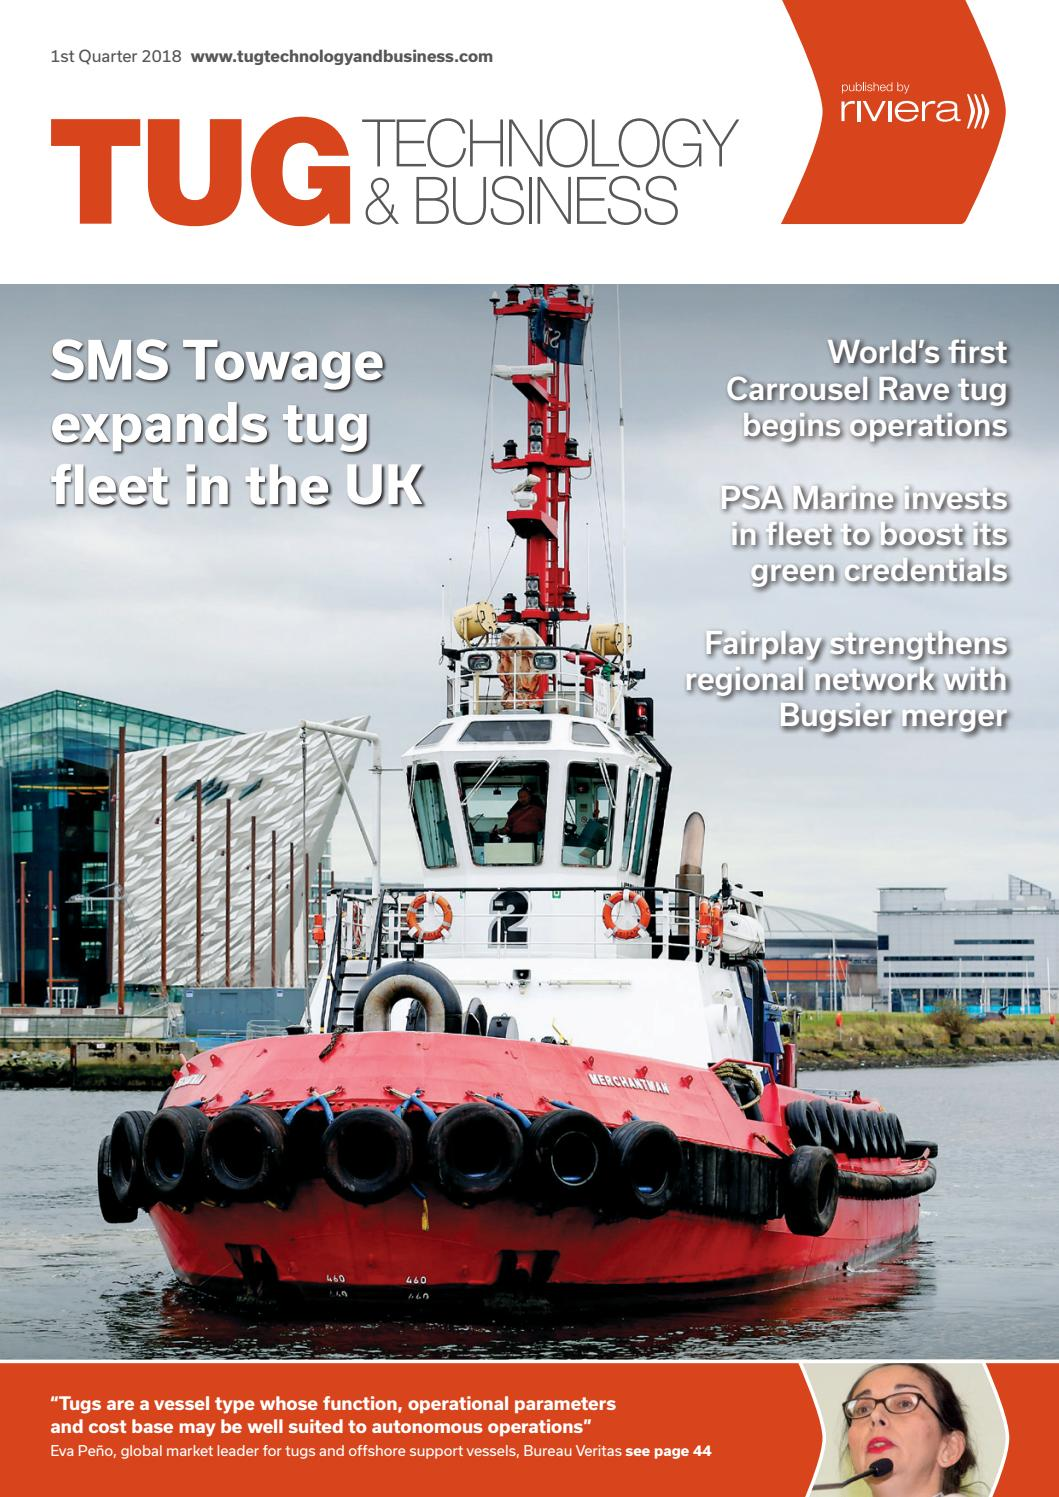 Tugs Technology & Business 1st Quarter 2018 by